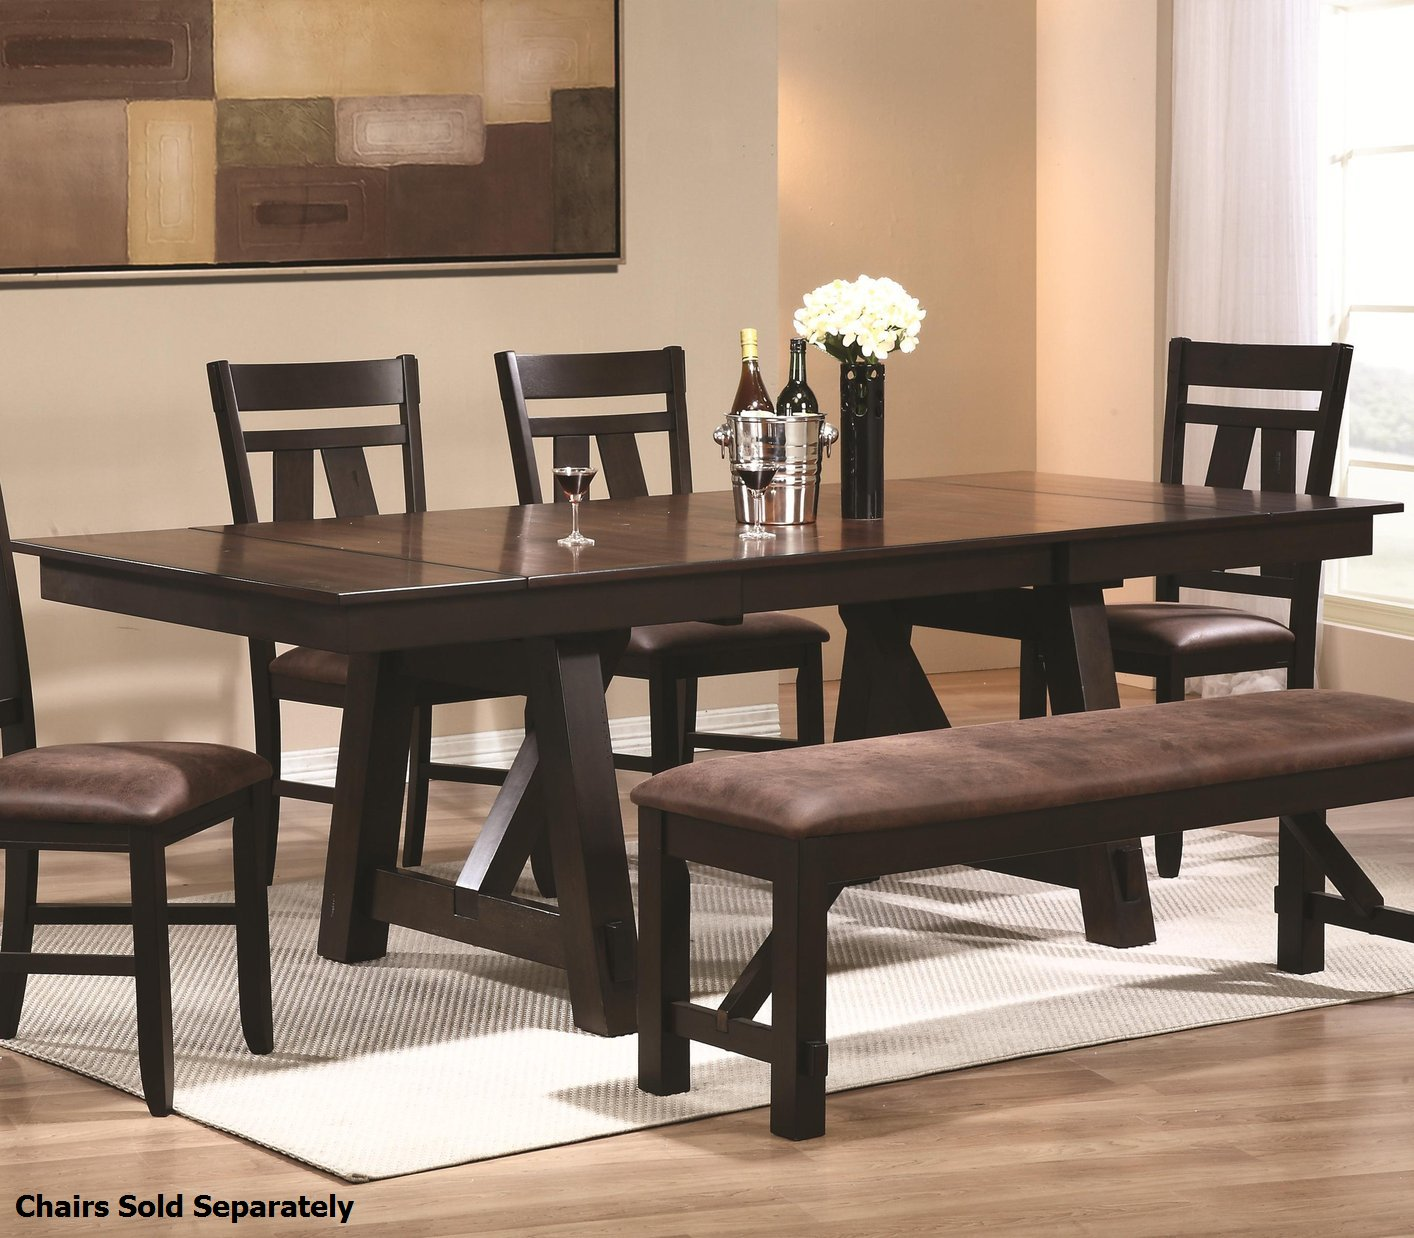 Wood And Black Dining Table: Coaster 102651 Black Wood Dining Table